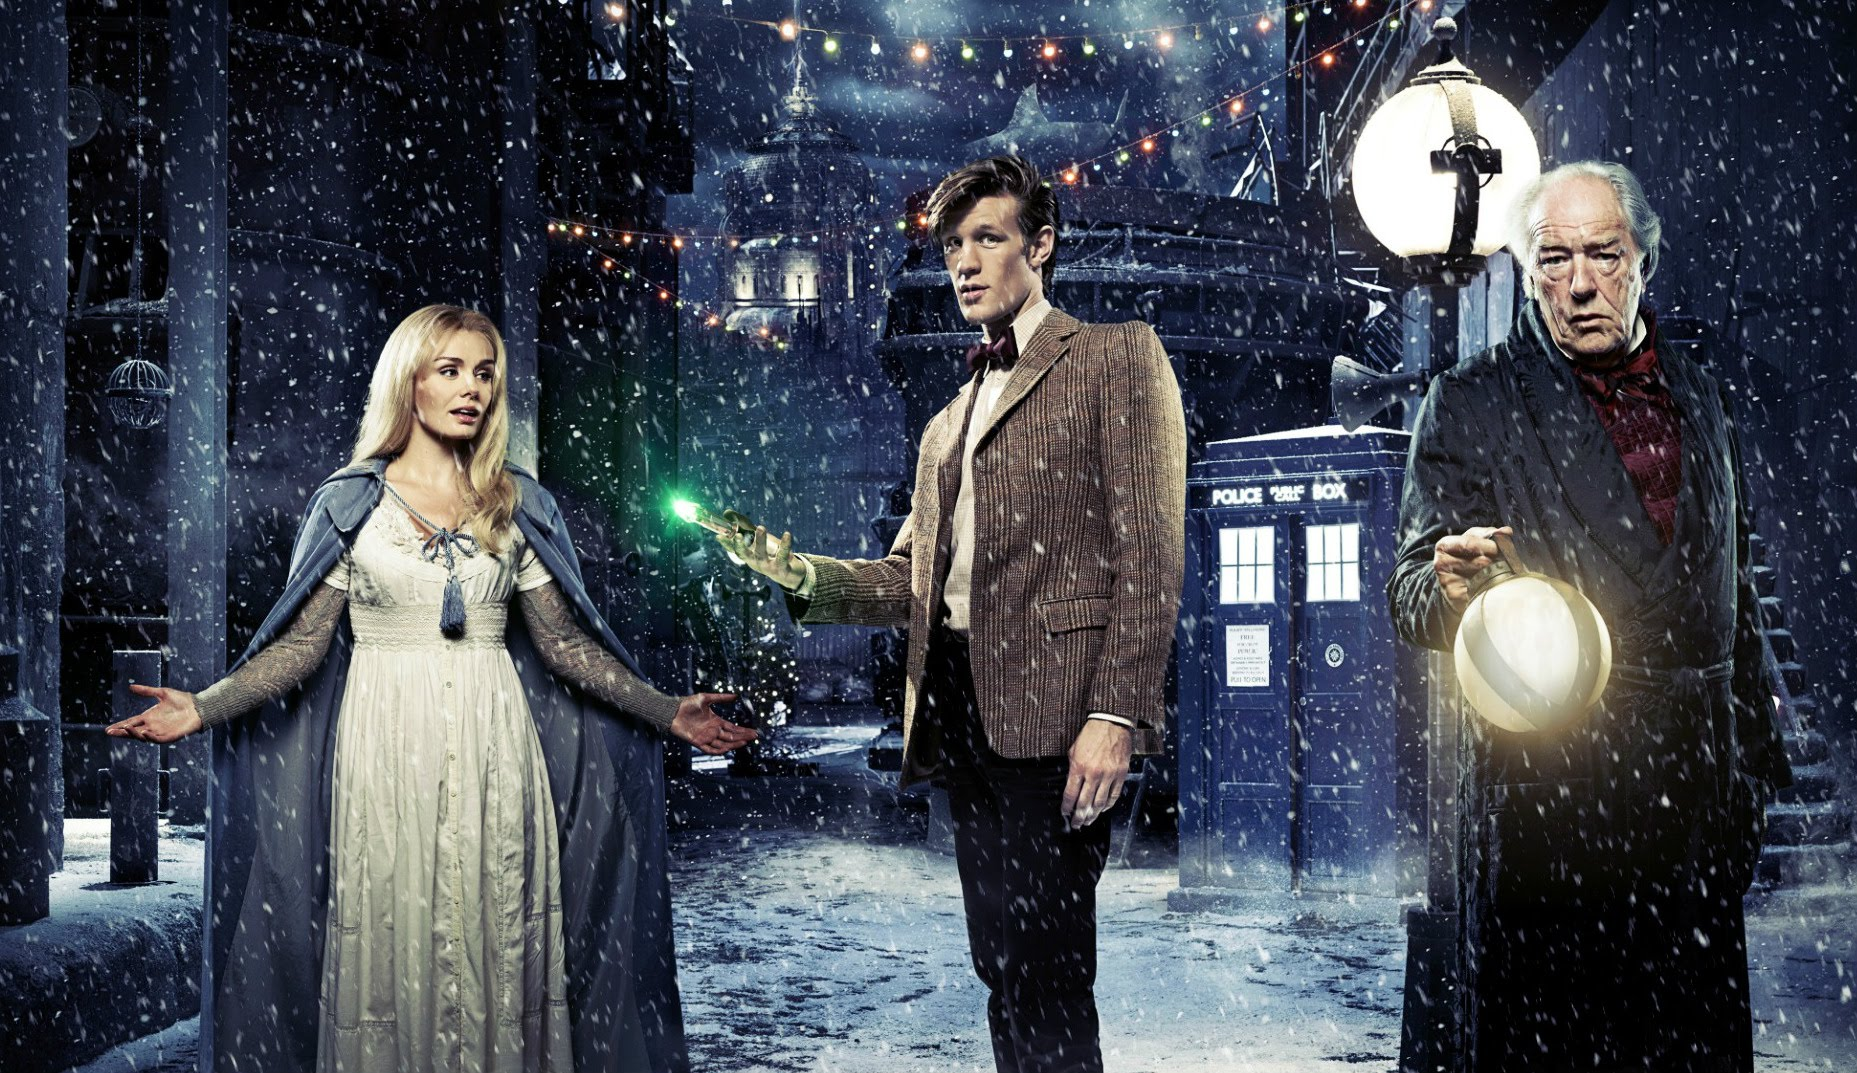 Doctor Who Christmas Special.Doctor Who Christmas Special Ranking Every Single